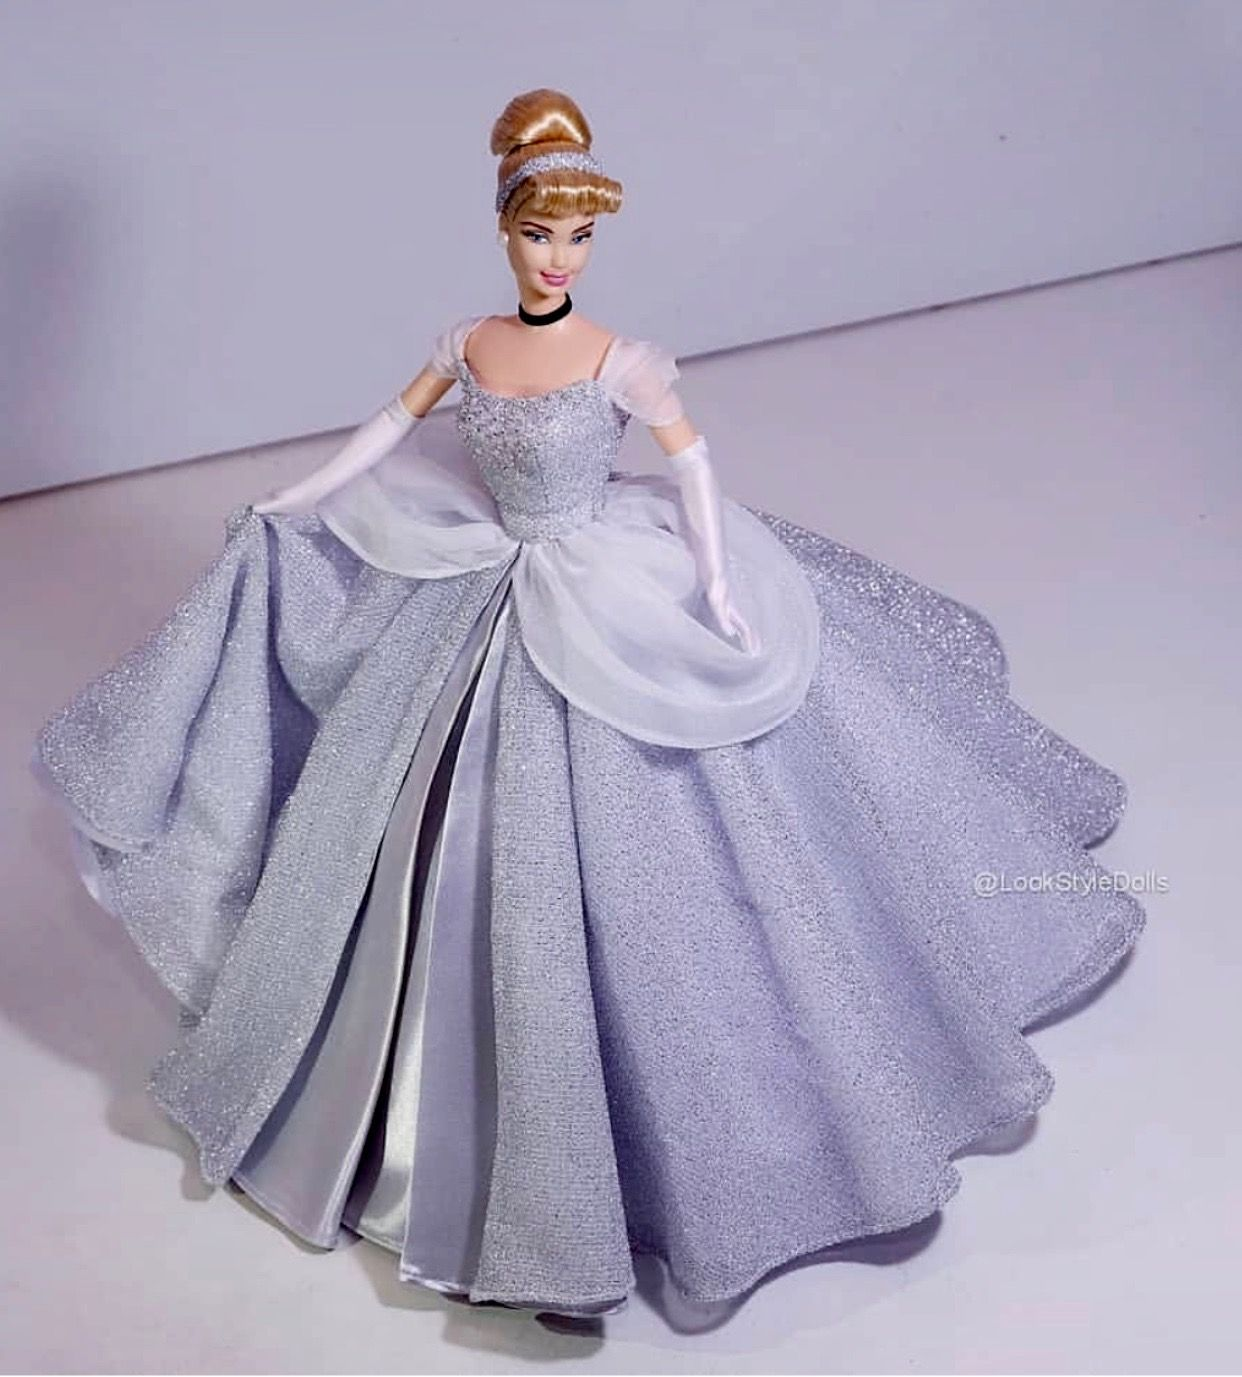 Fashion Outfit Dress Party Flat Gown for Barbie Dolls Clothes X-mas Gift Girls